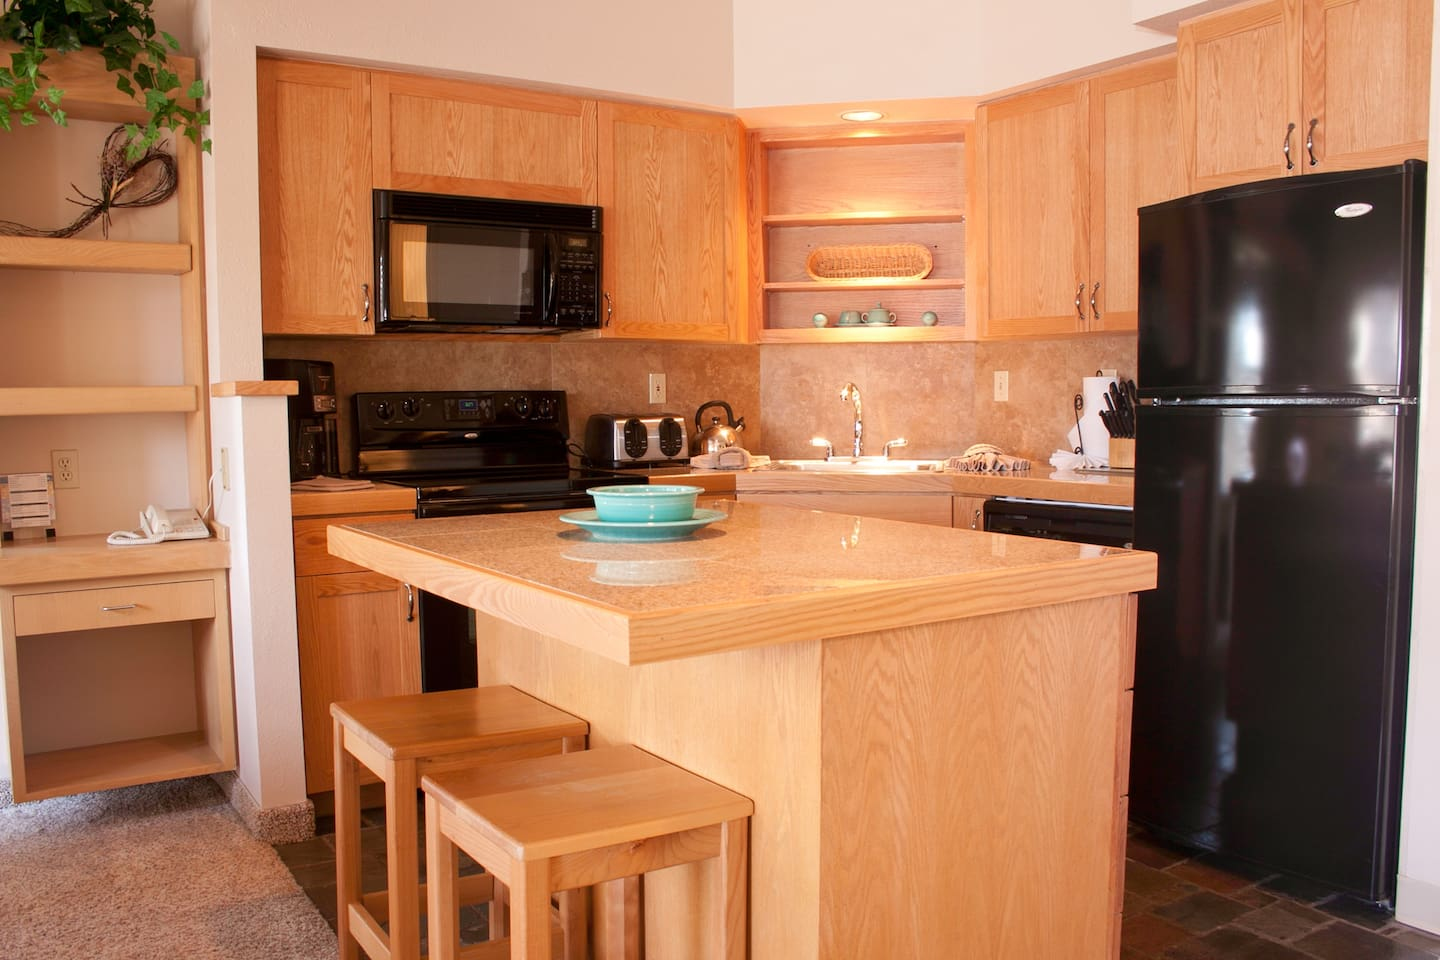 Fully stocked kitchen with all appliances, cookware, utensils and coffee maker.